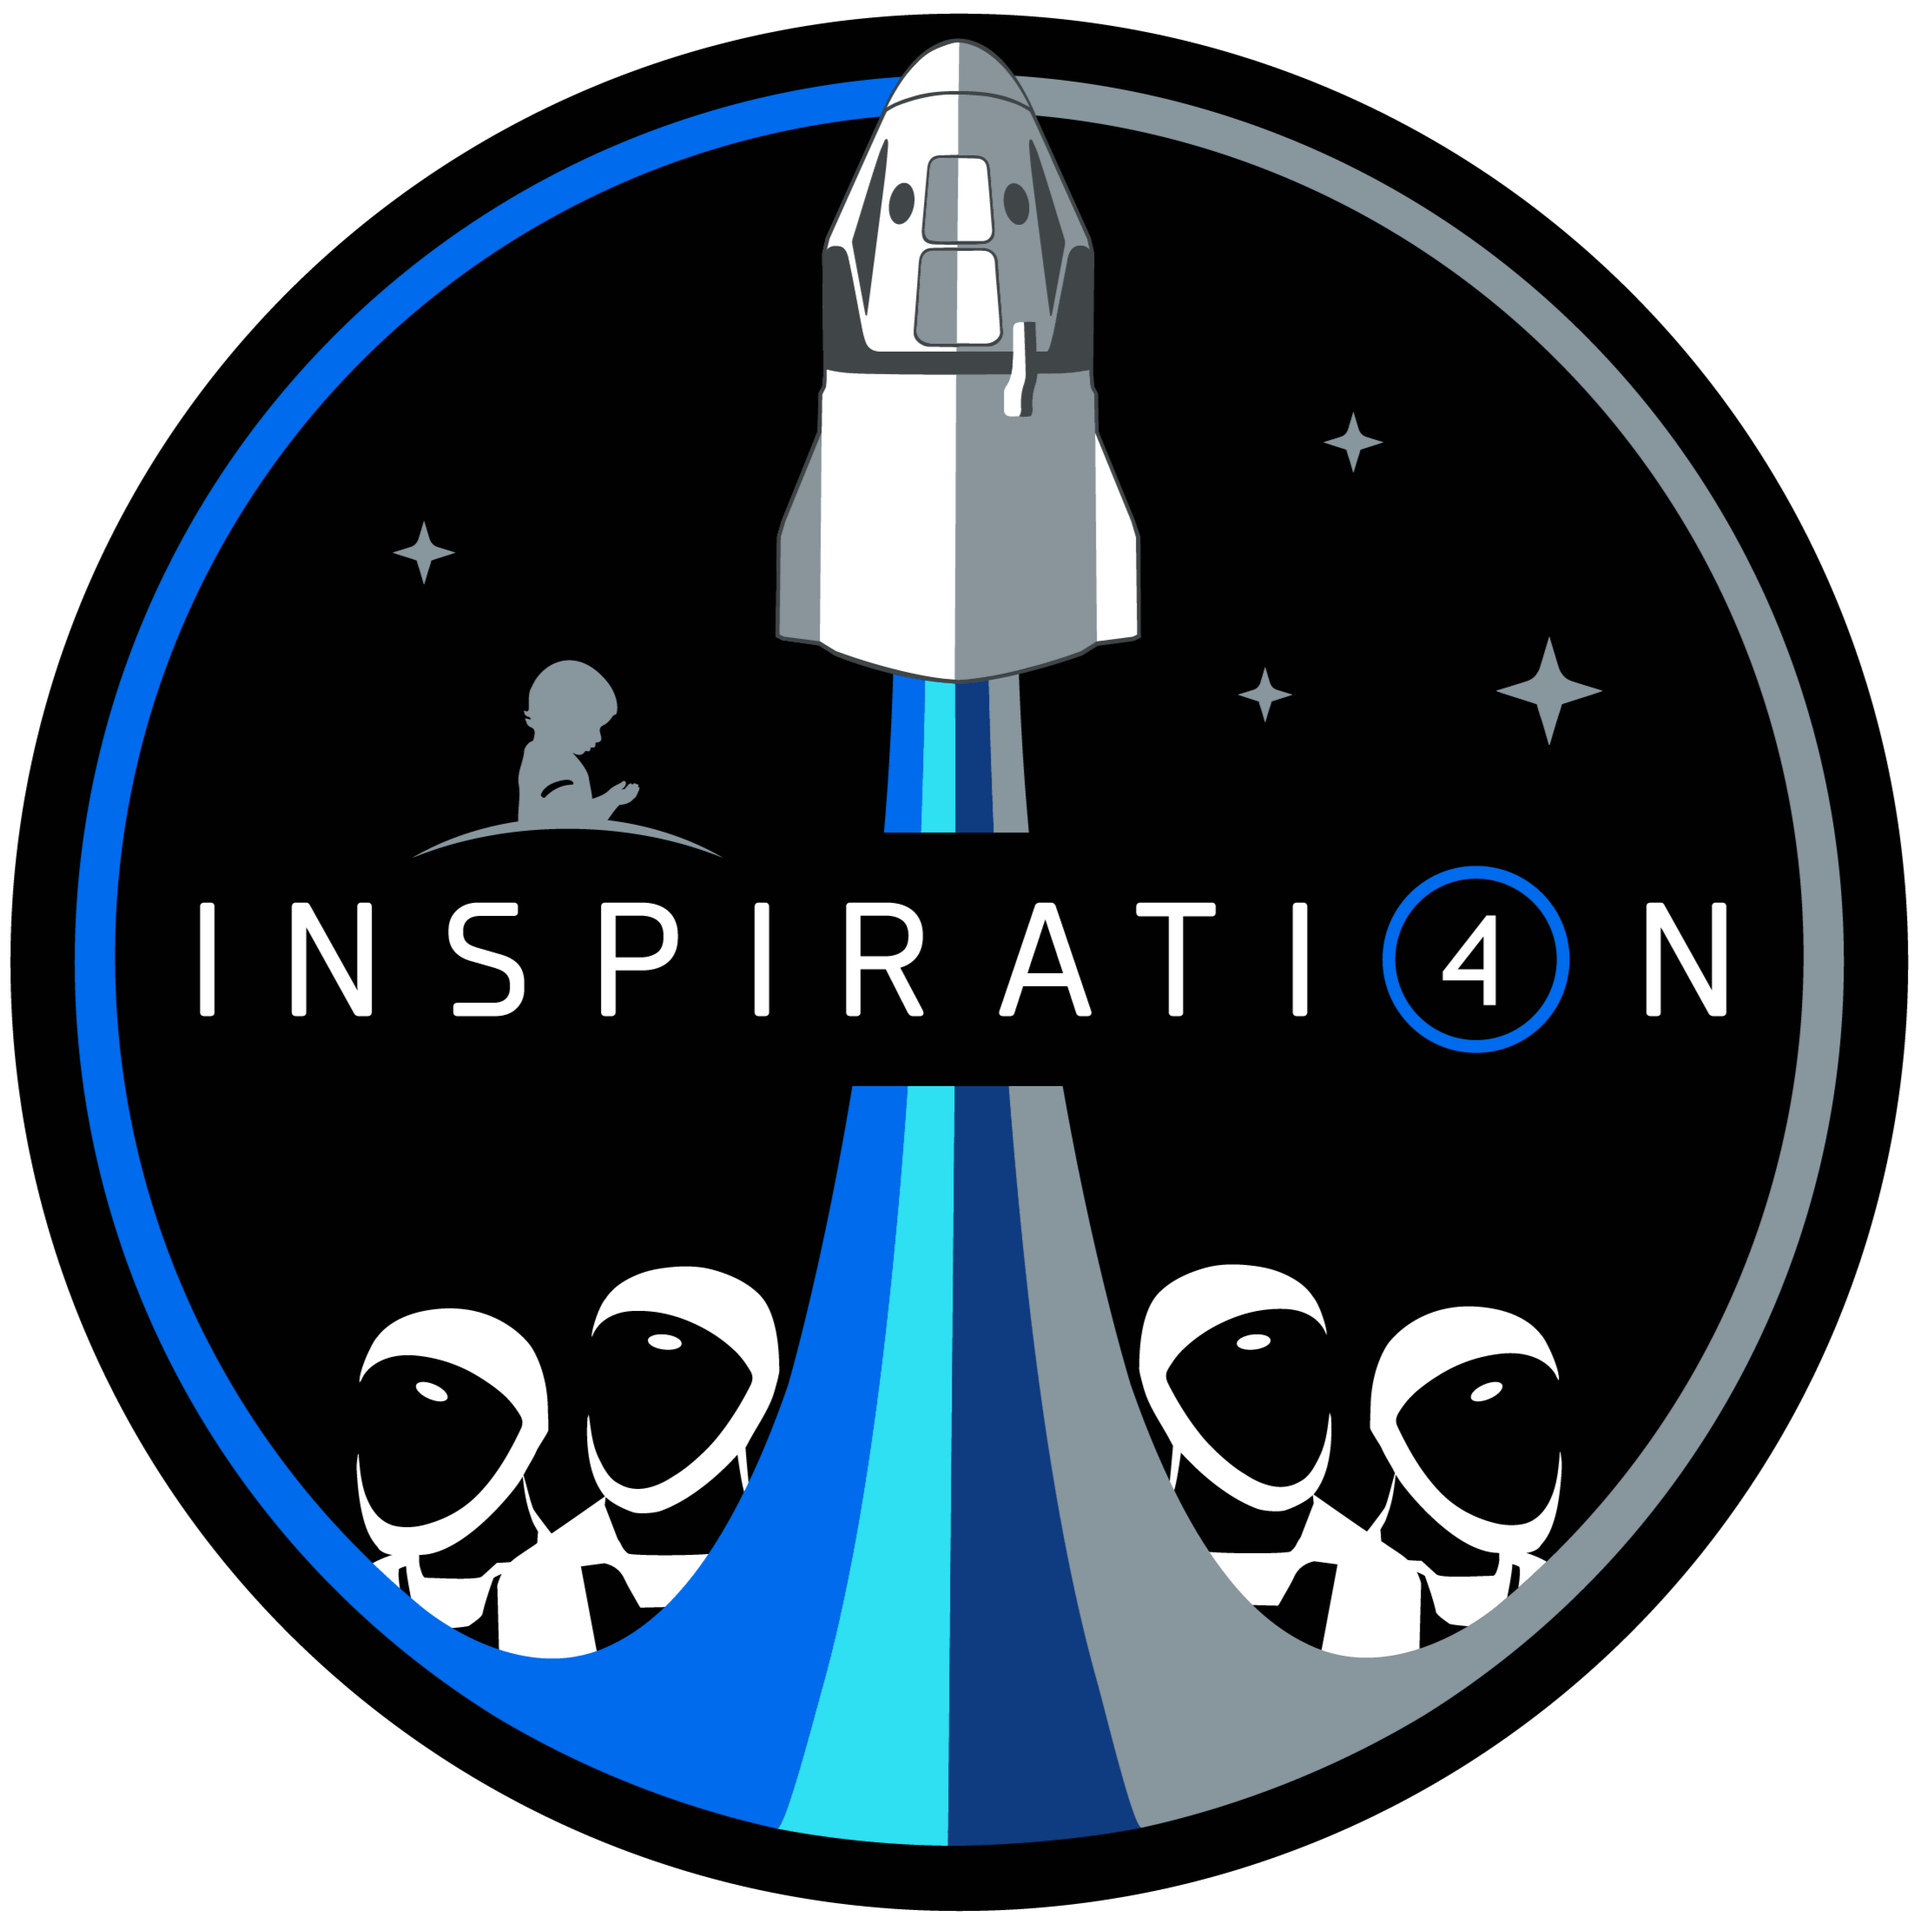 Mission patch for Inspiration4